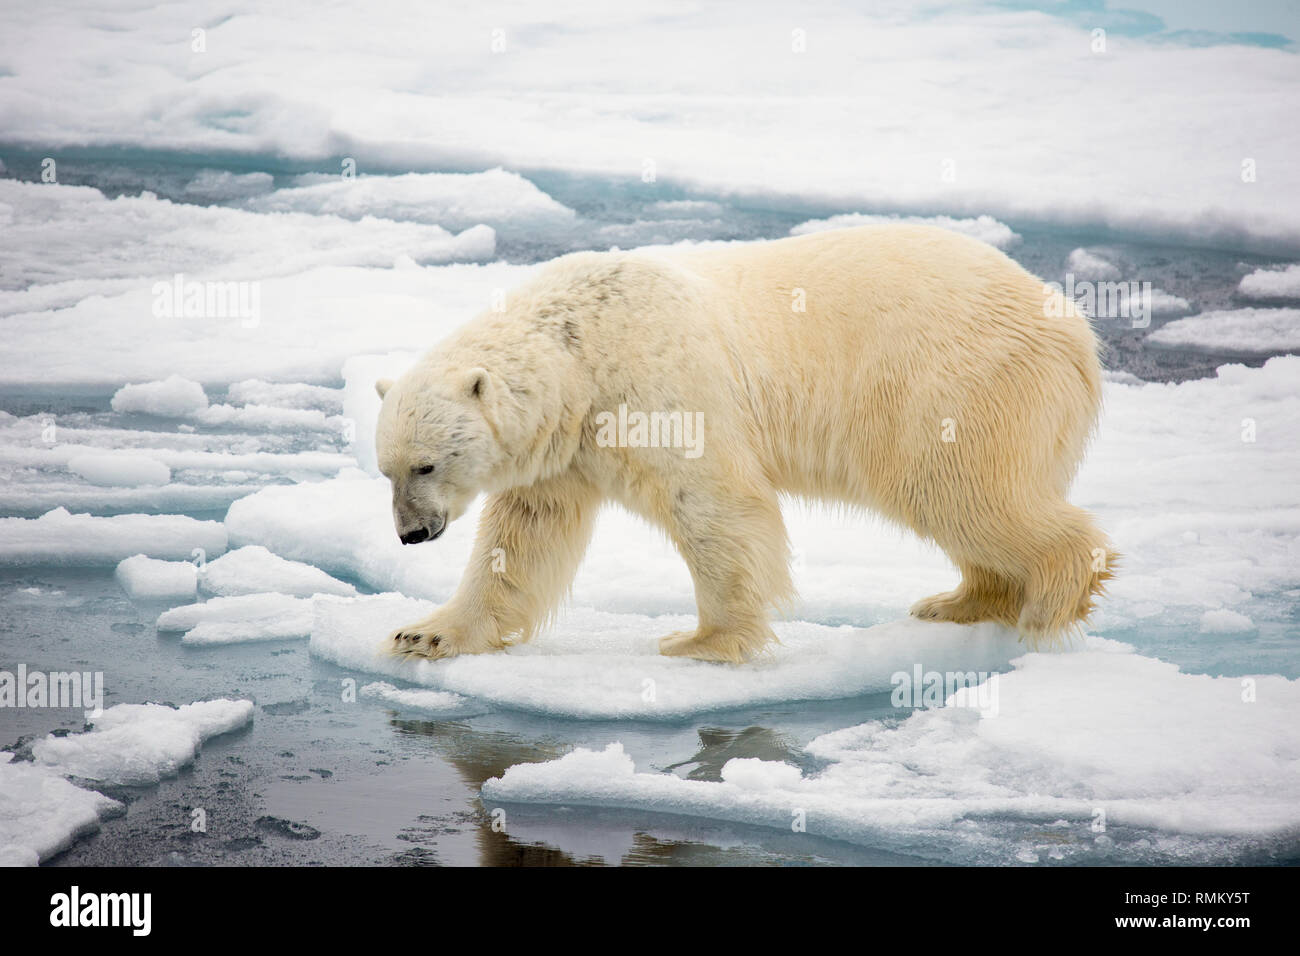 A Polar Bear (Ursus maritimus) hunting seals on rotten sea ice off the north coast of Spitsbergen, Svalbard only 500 miles from the North Pole. Climat - Stock Image